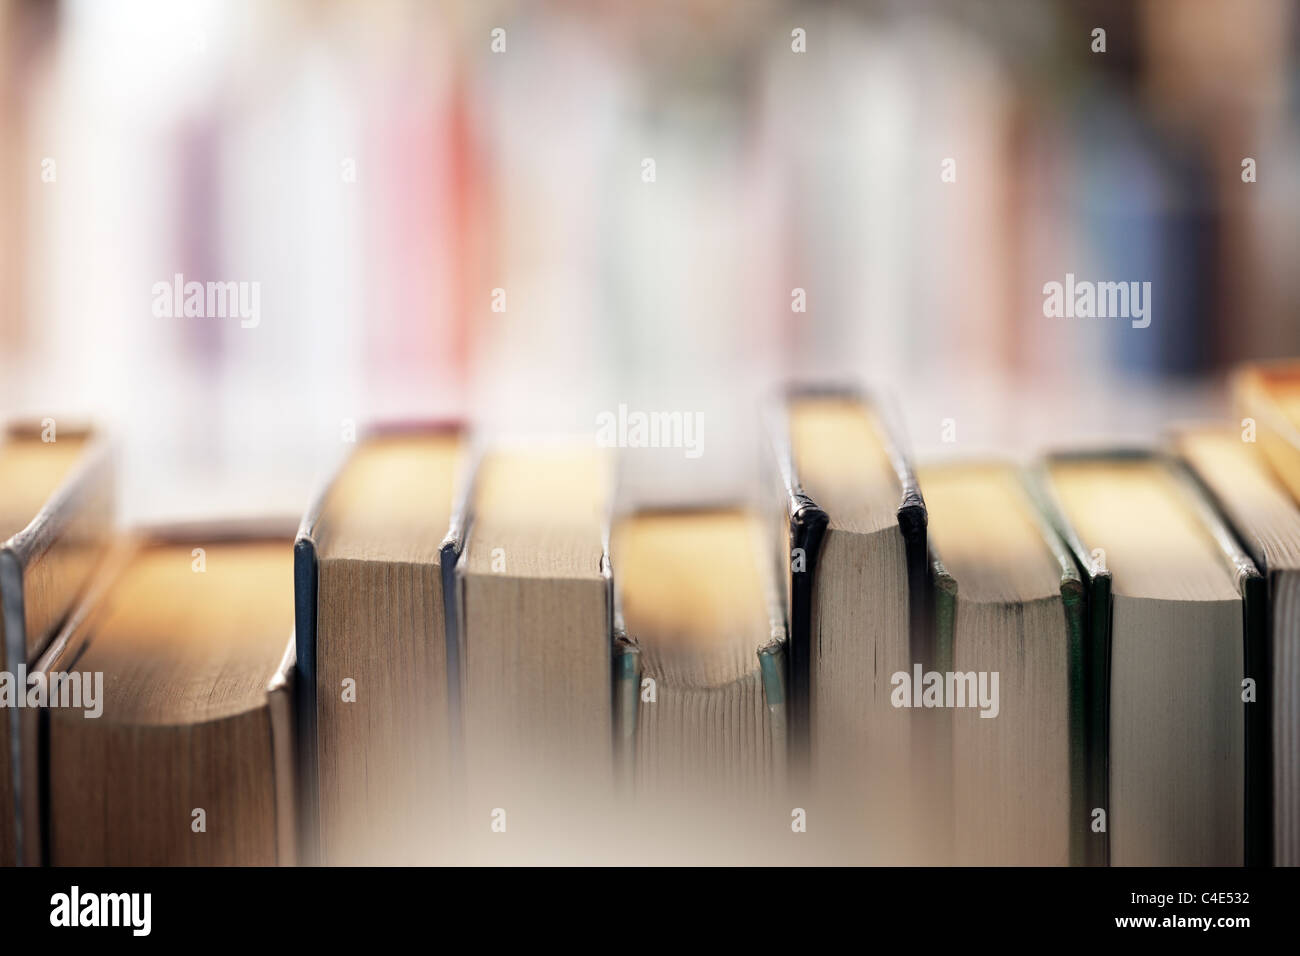 Books on a library shelf - Stock Image